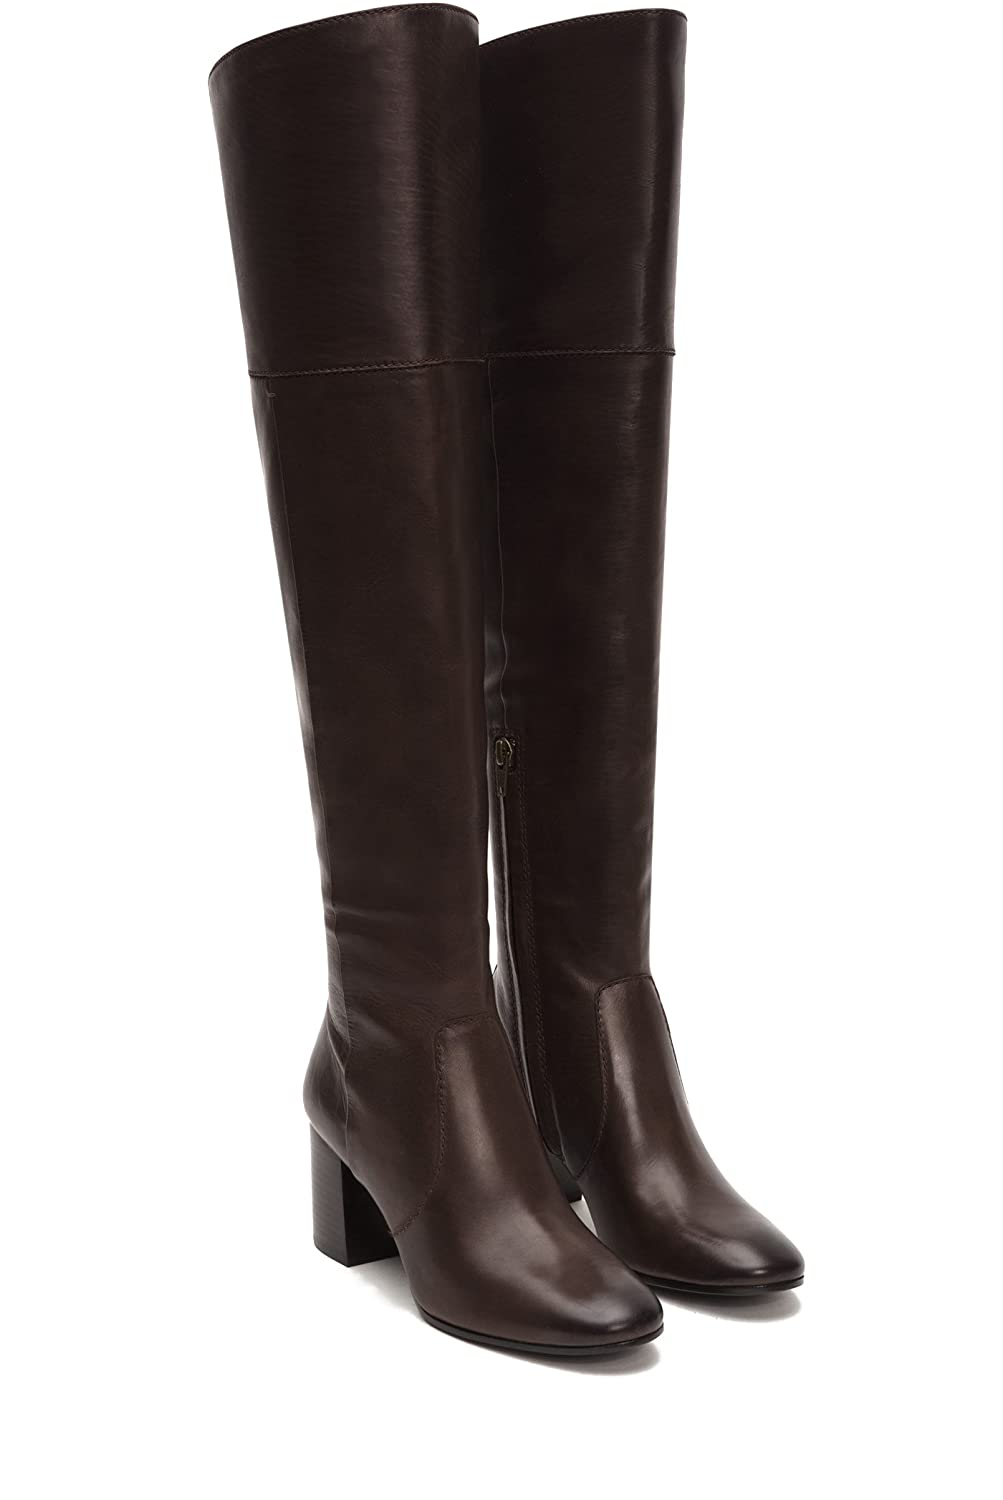 FRYE 3475336 Women's Jodi OTK Boot B0192JV5O4 8 B(M) US|Dark Brown